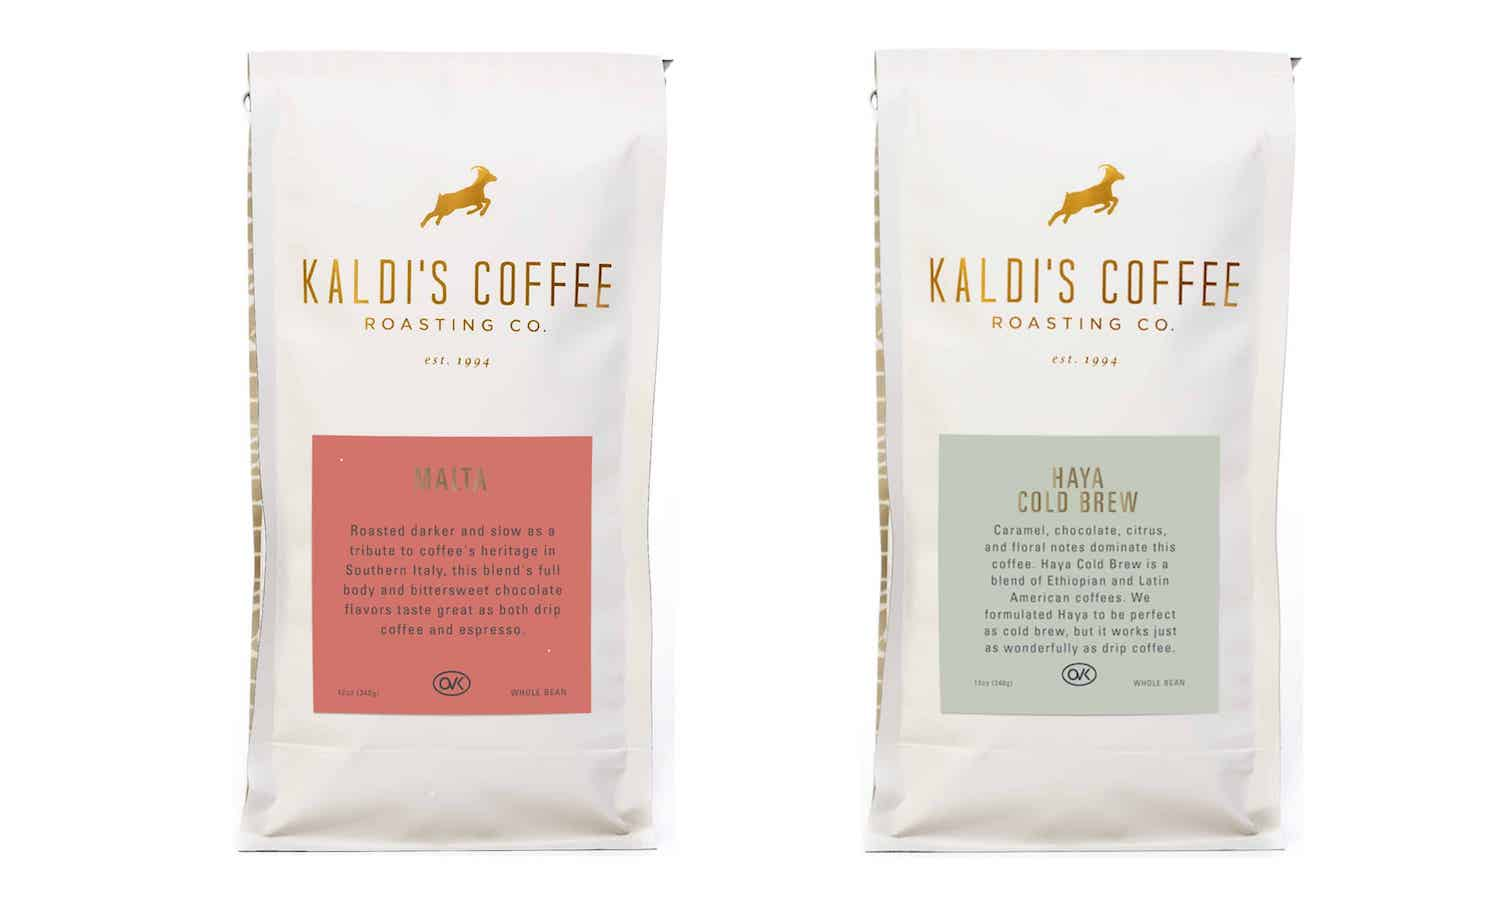 Cafe Malta and Haya Cold Brew 12oz Bags